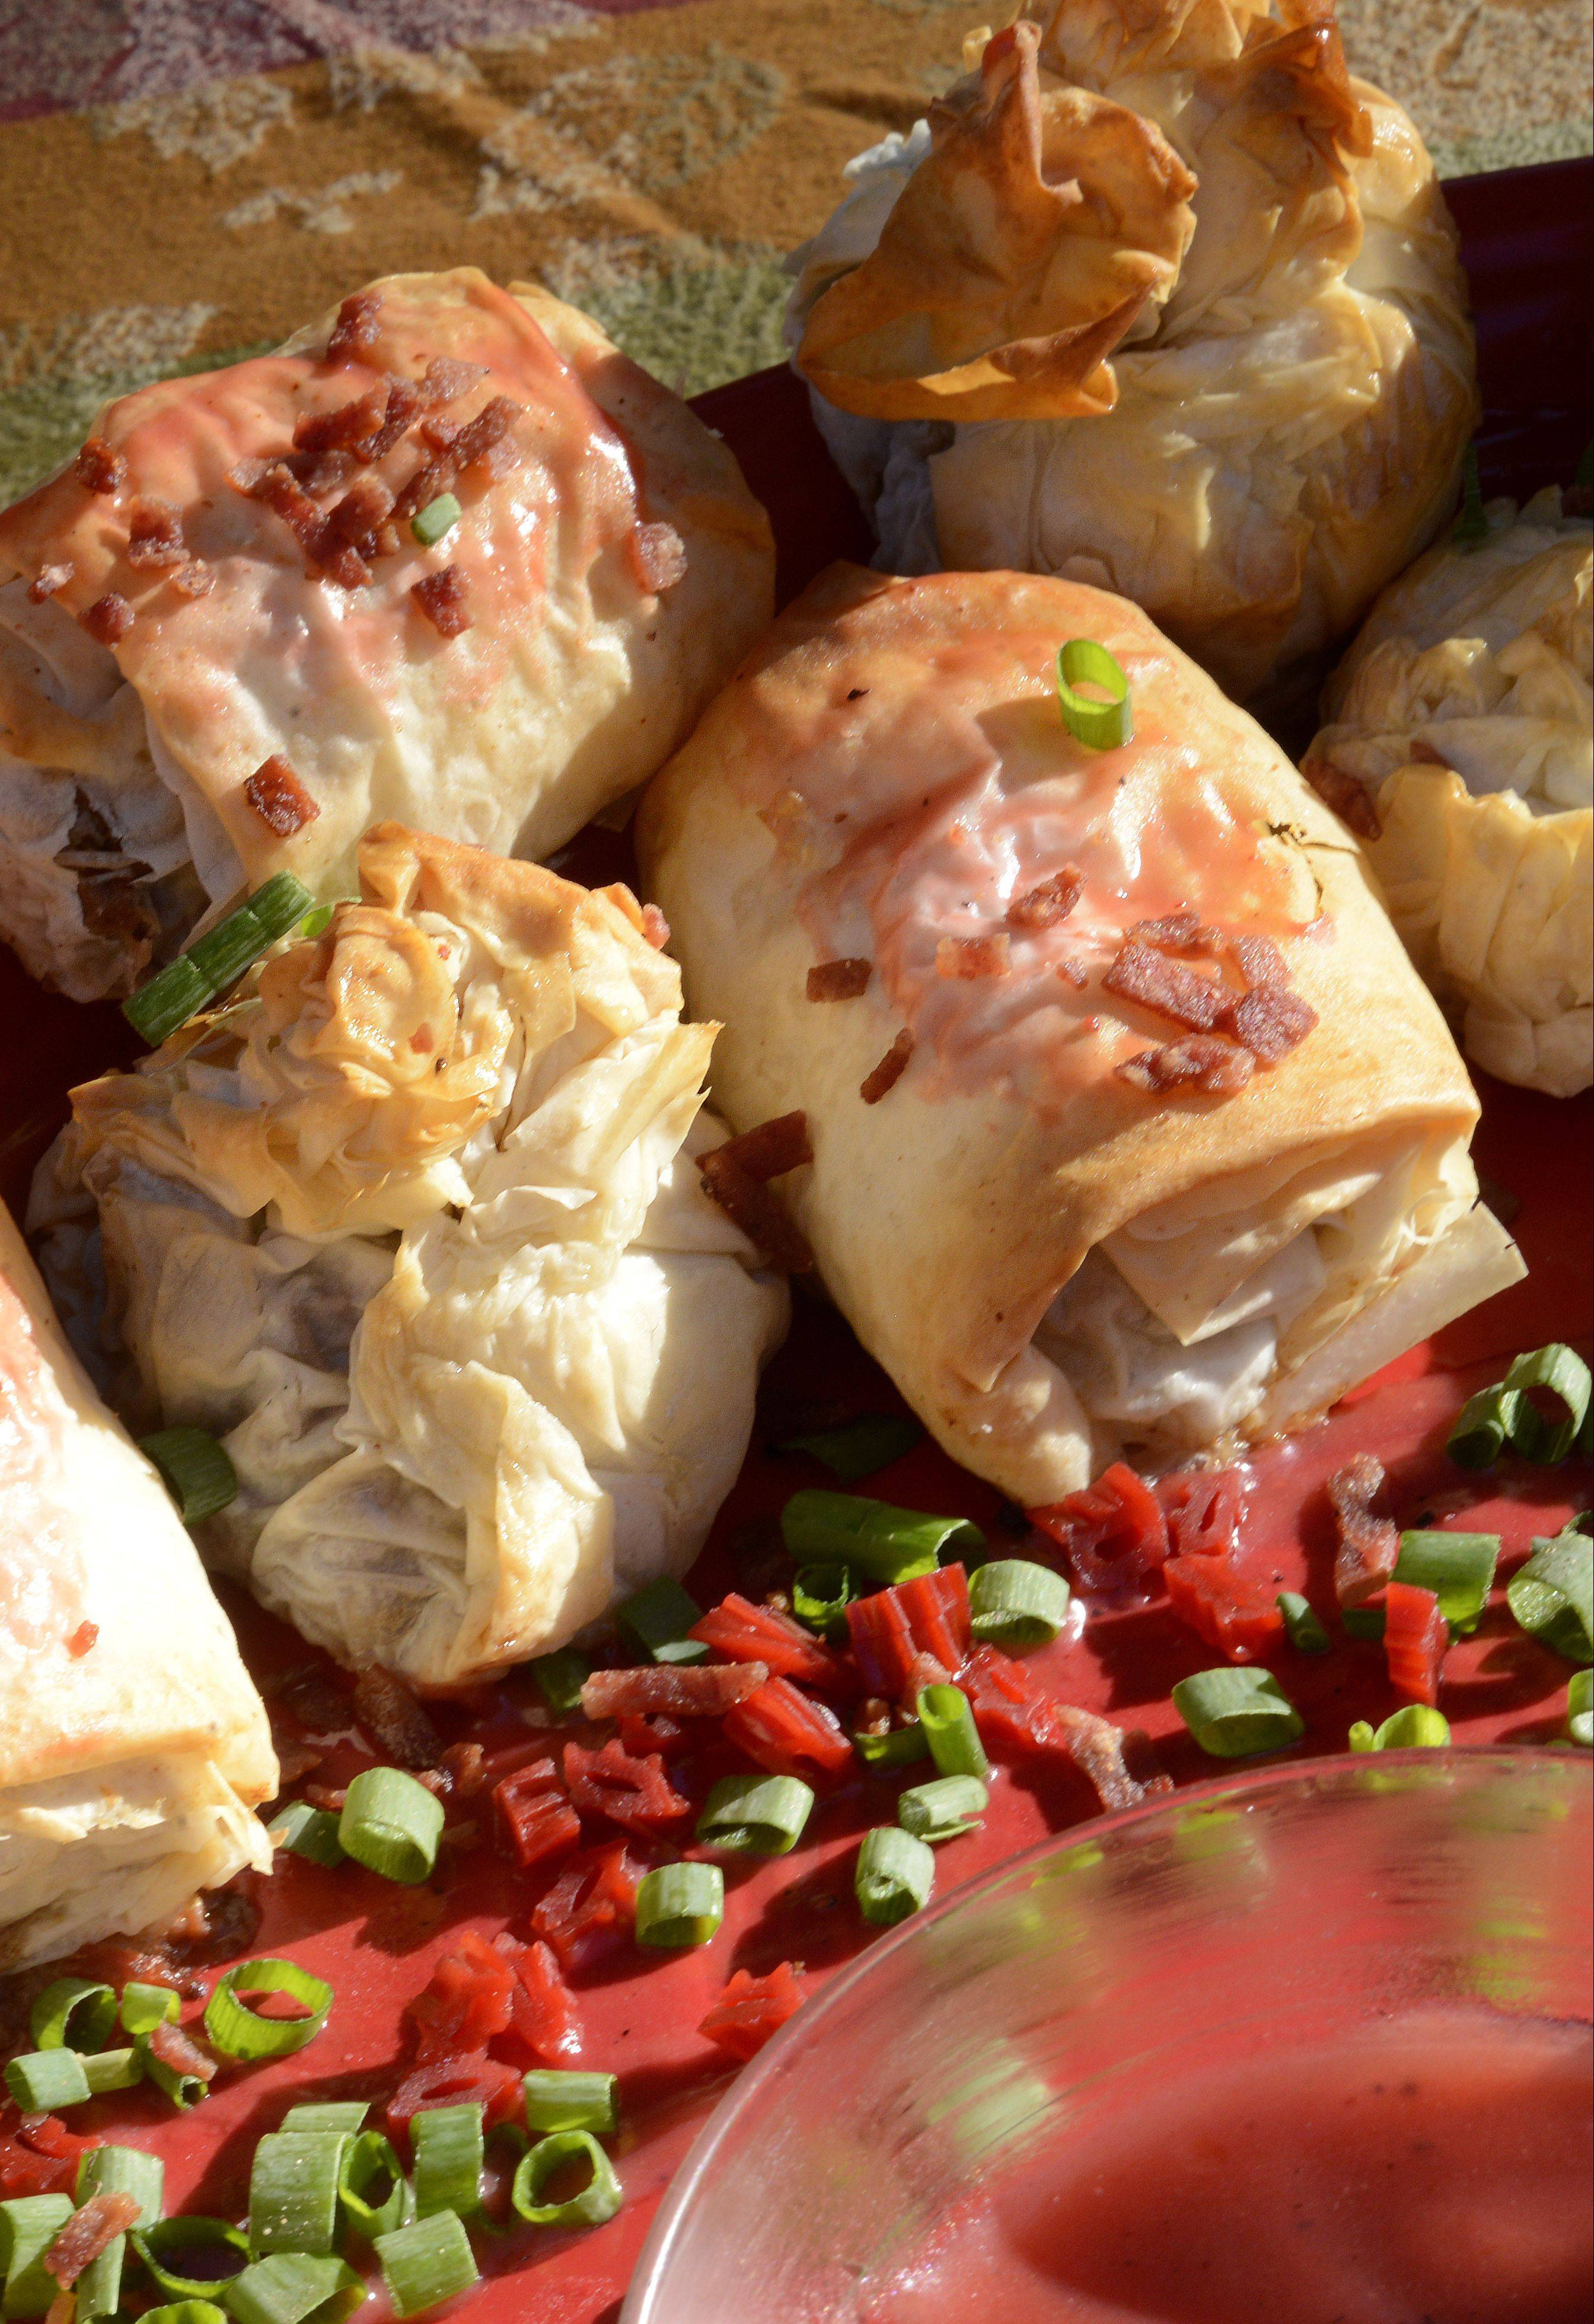 Dan Rich's appetizer spread included Phyllo Bombs and beef Wellingtons both served with a Twiz